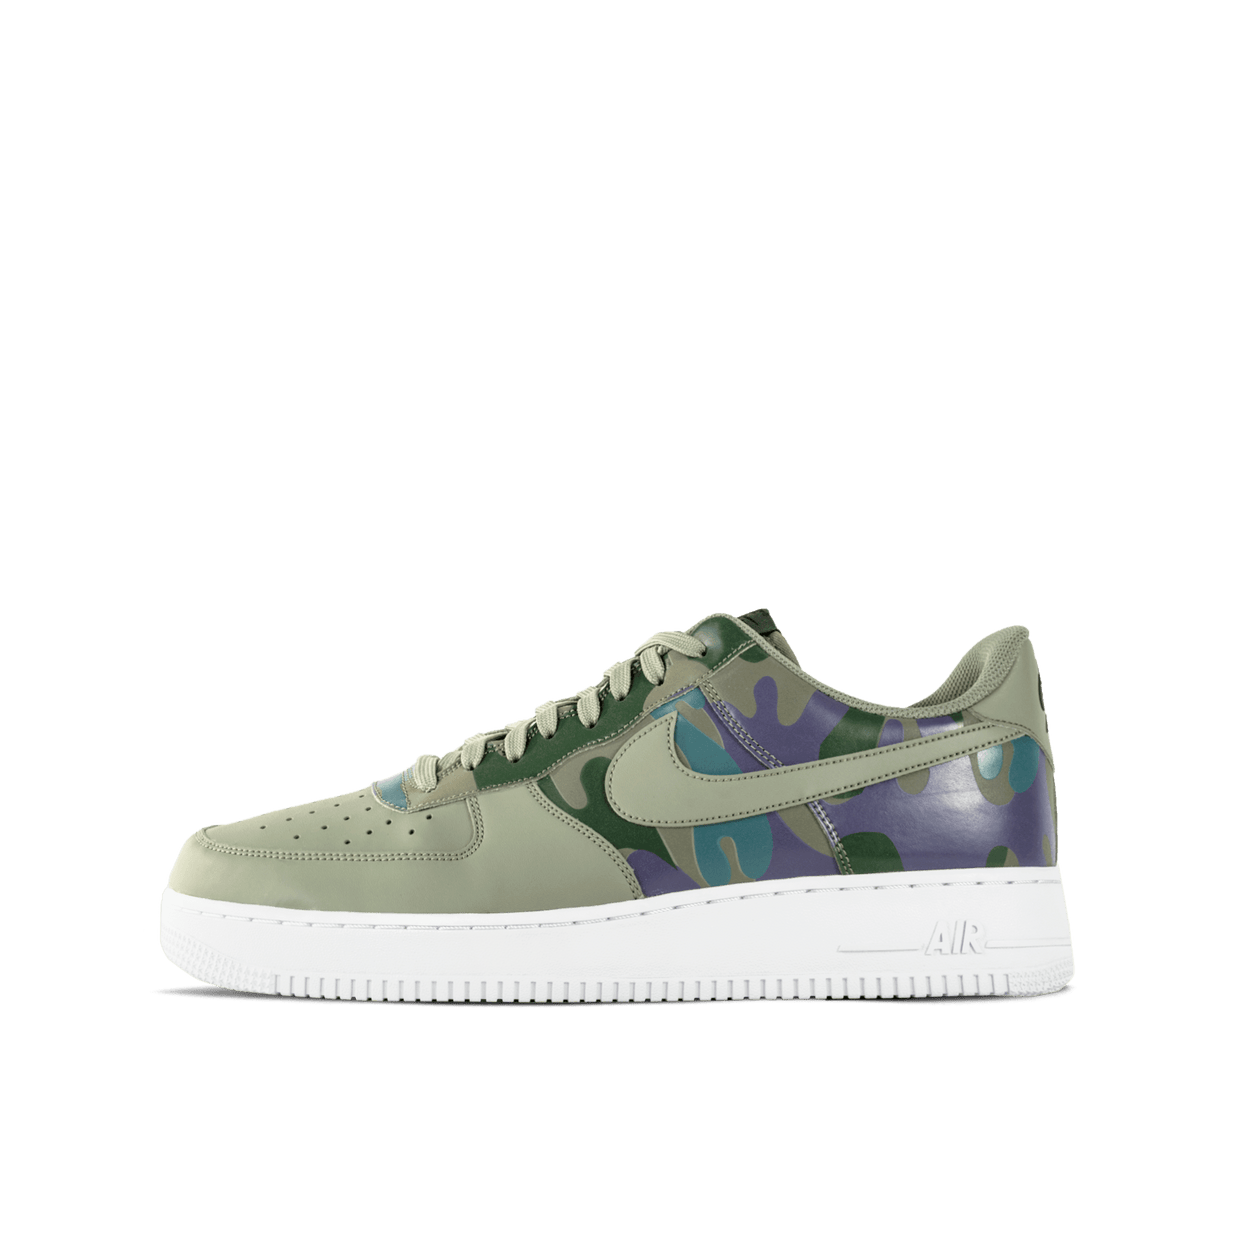 Air Force 1 '07 LV - Dark Stucco